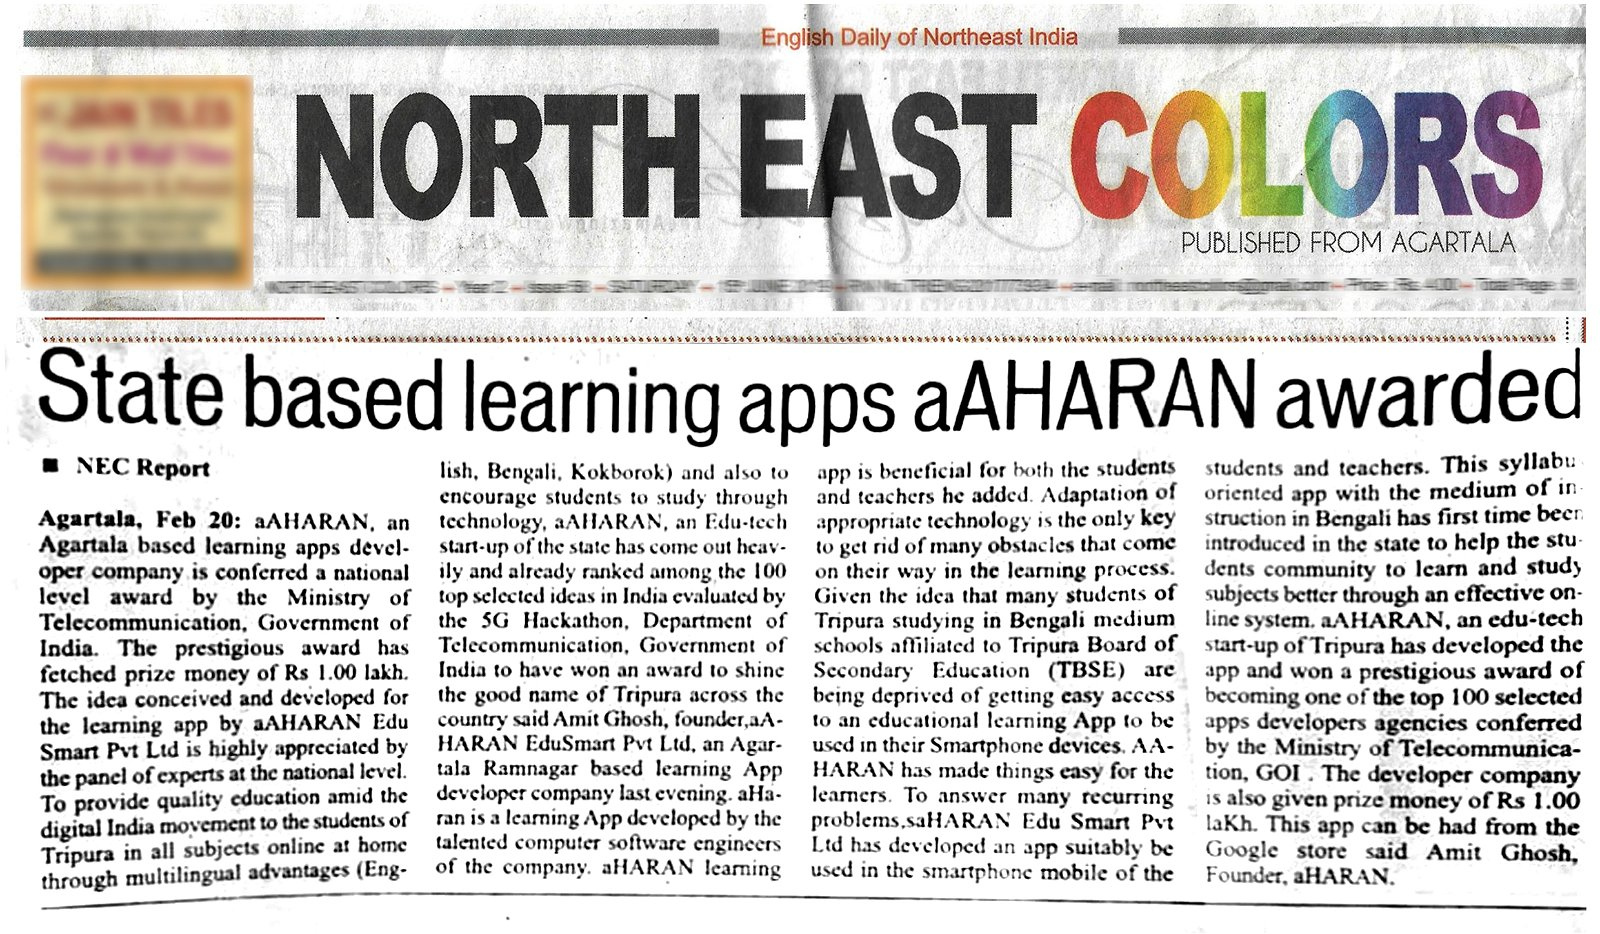 State based learning app aAHARAN awared